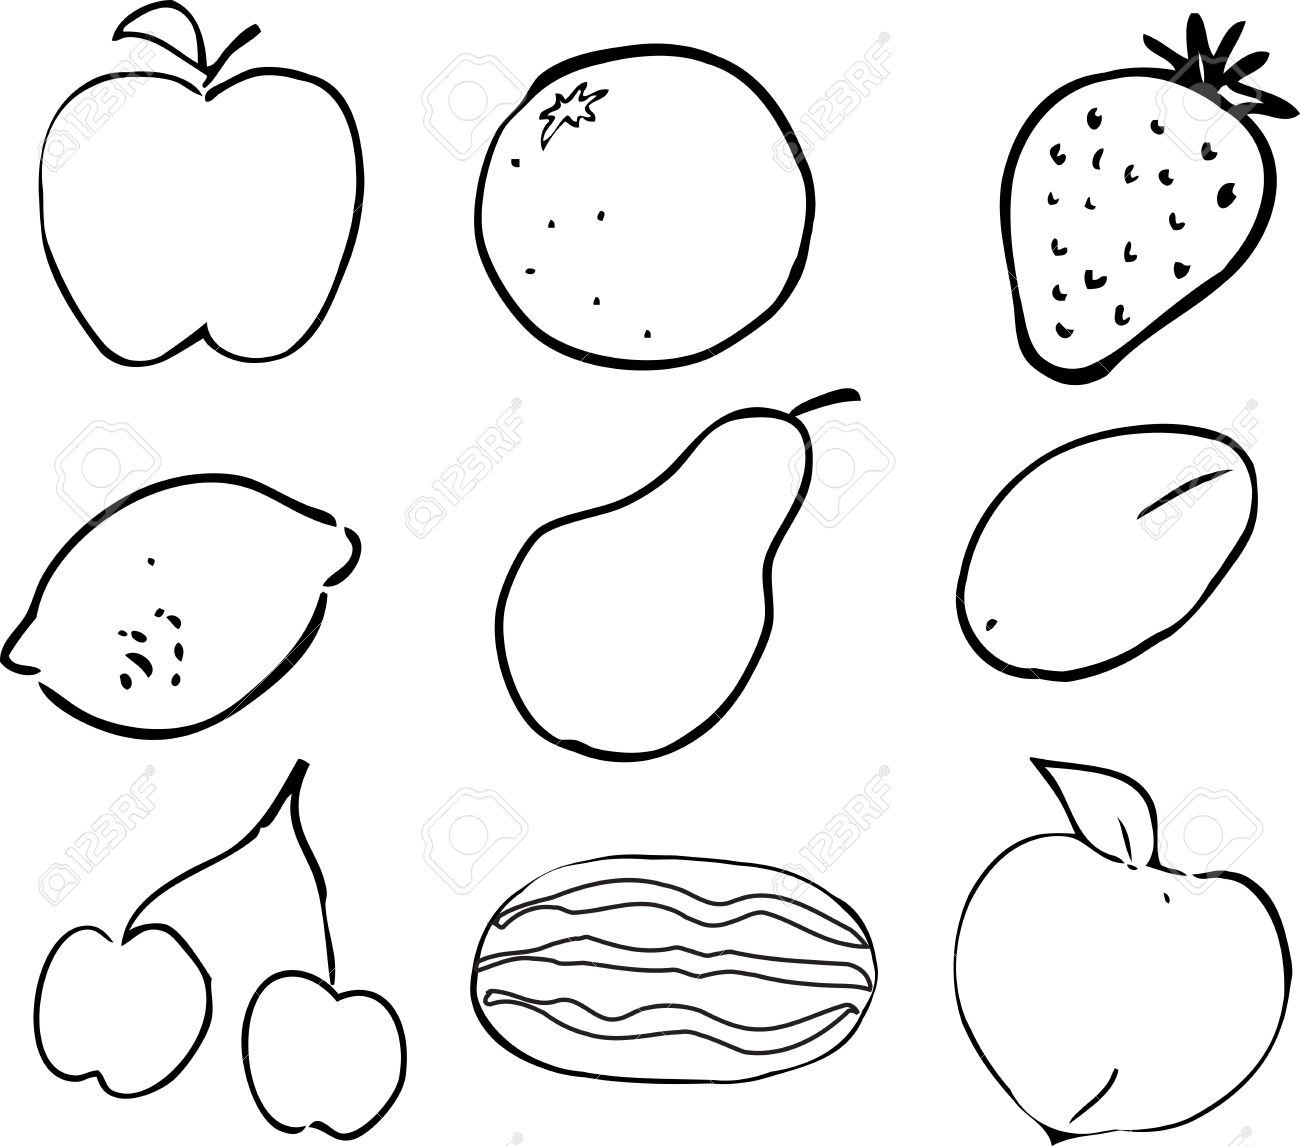 black u0026 white lineart illustration of fruits hand drawn look